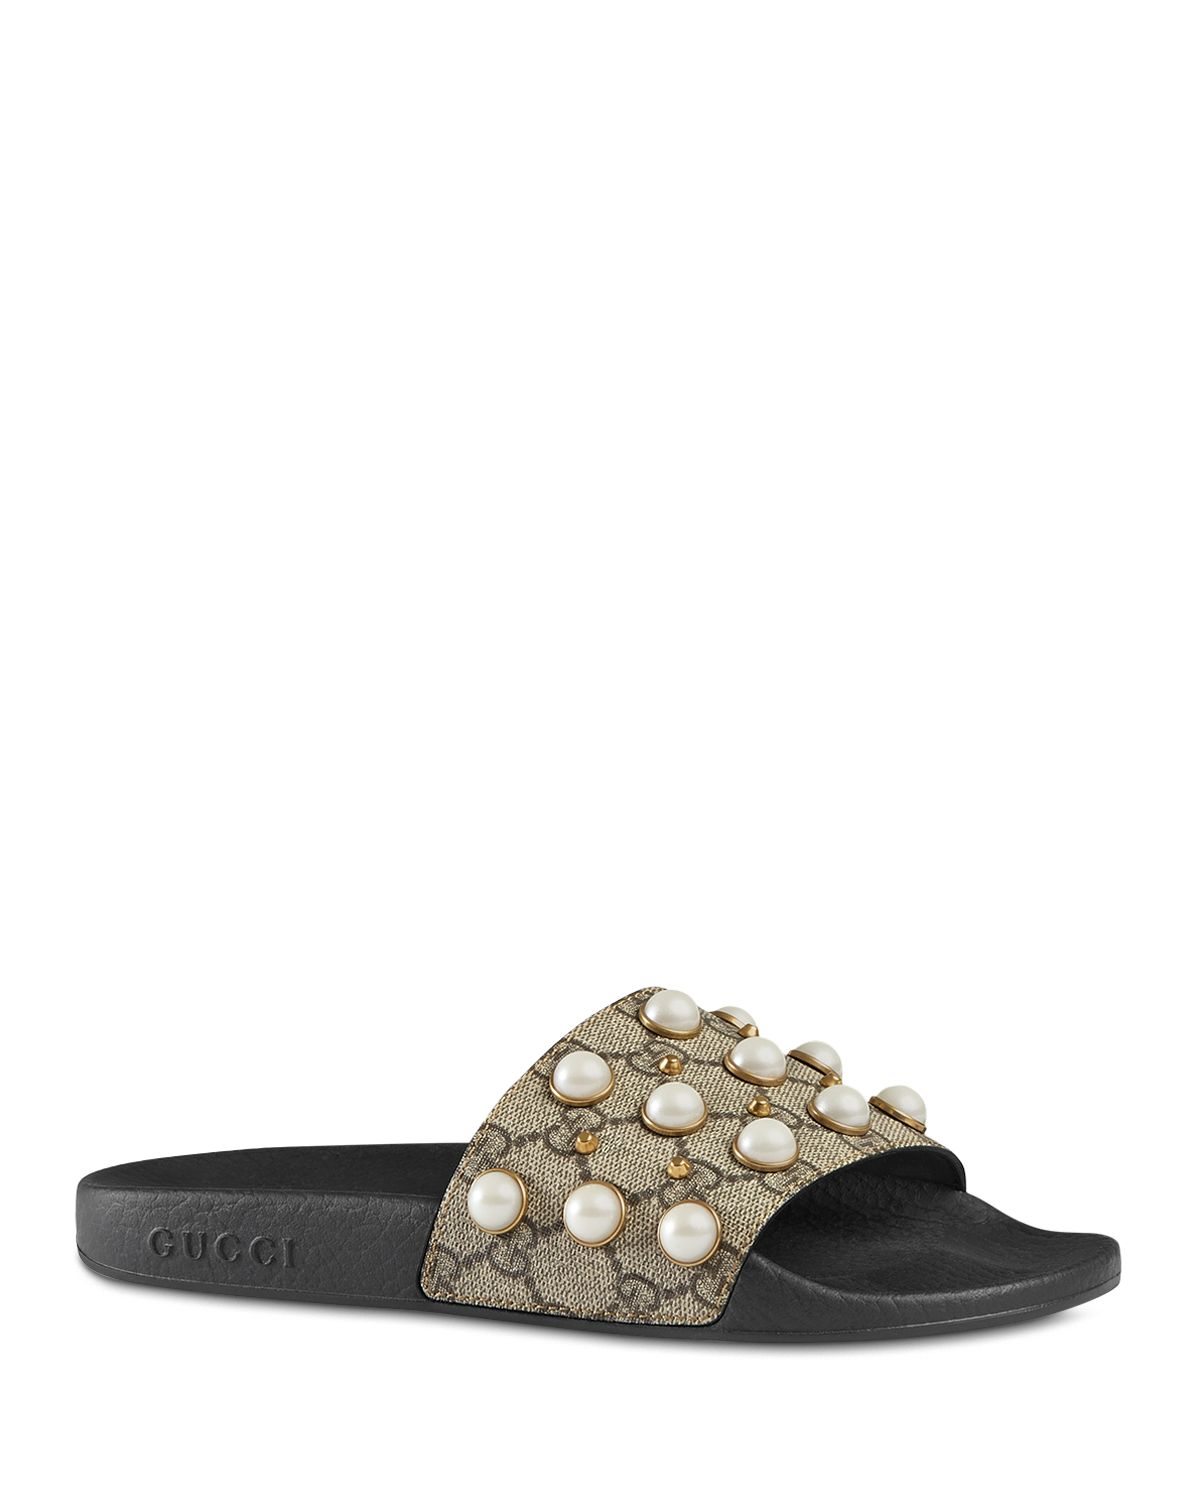 Gucci Women's Pursuit Imitation Pearl Embellished Slide Sandal